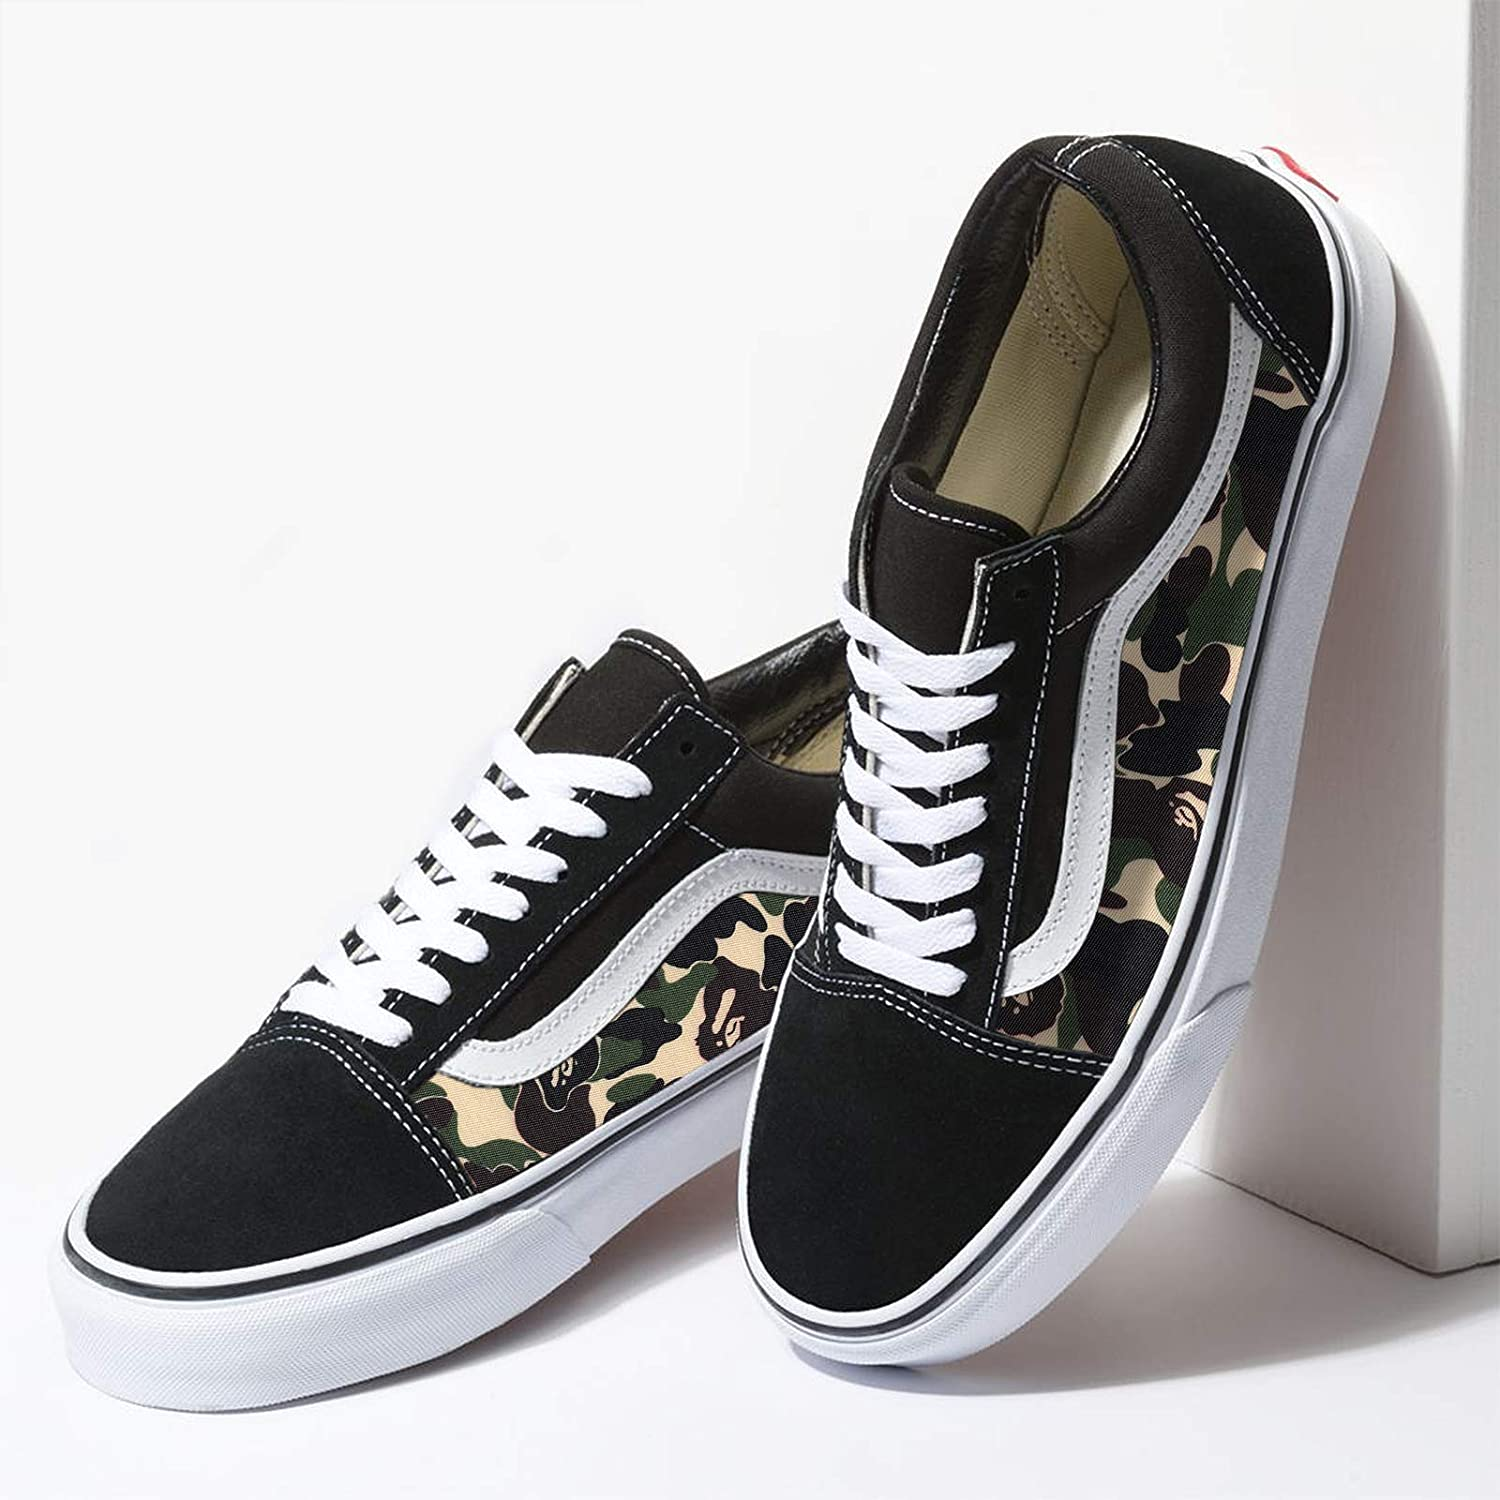 : Vans Black Old Skool x Bape Camo Pattern Custom